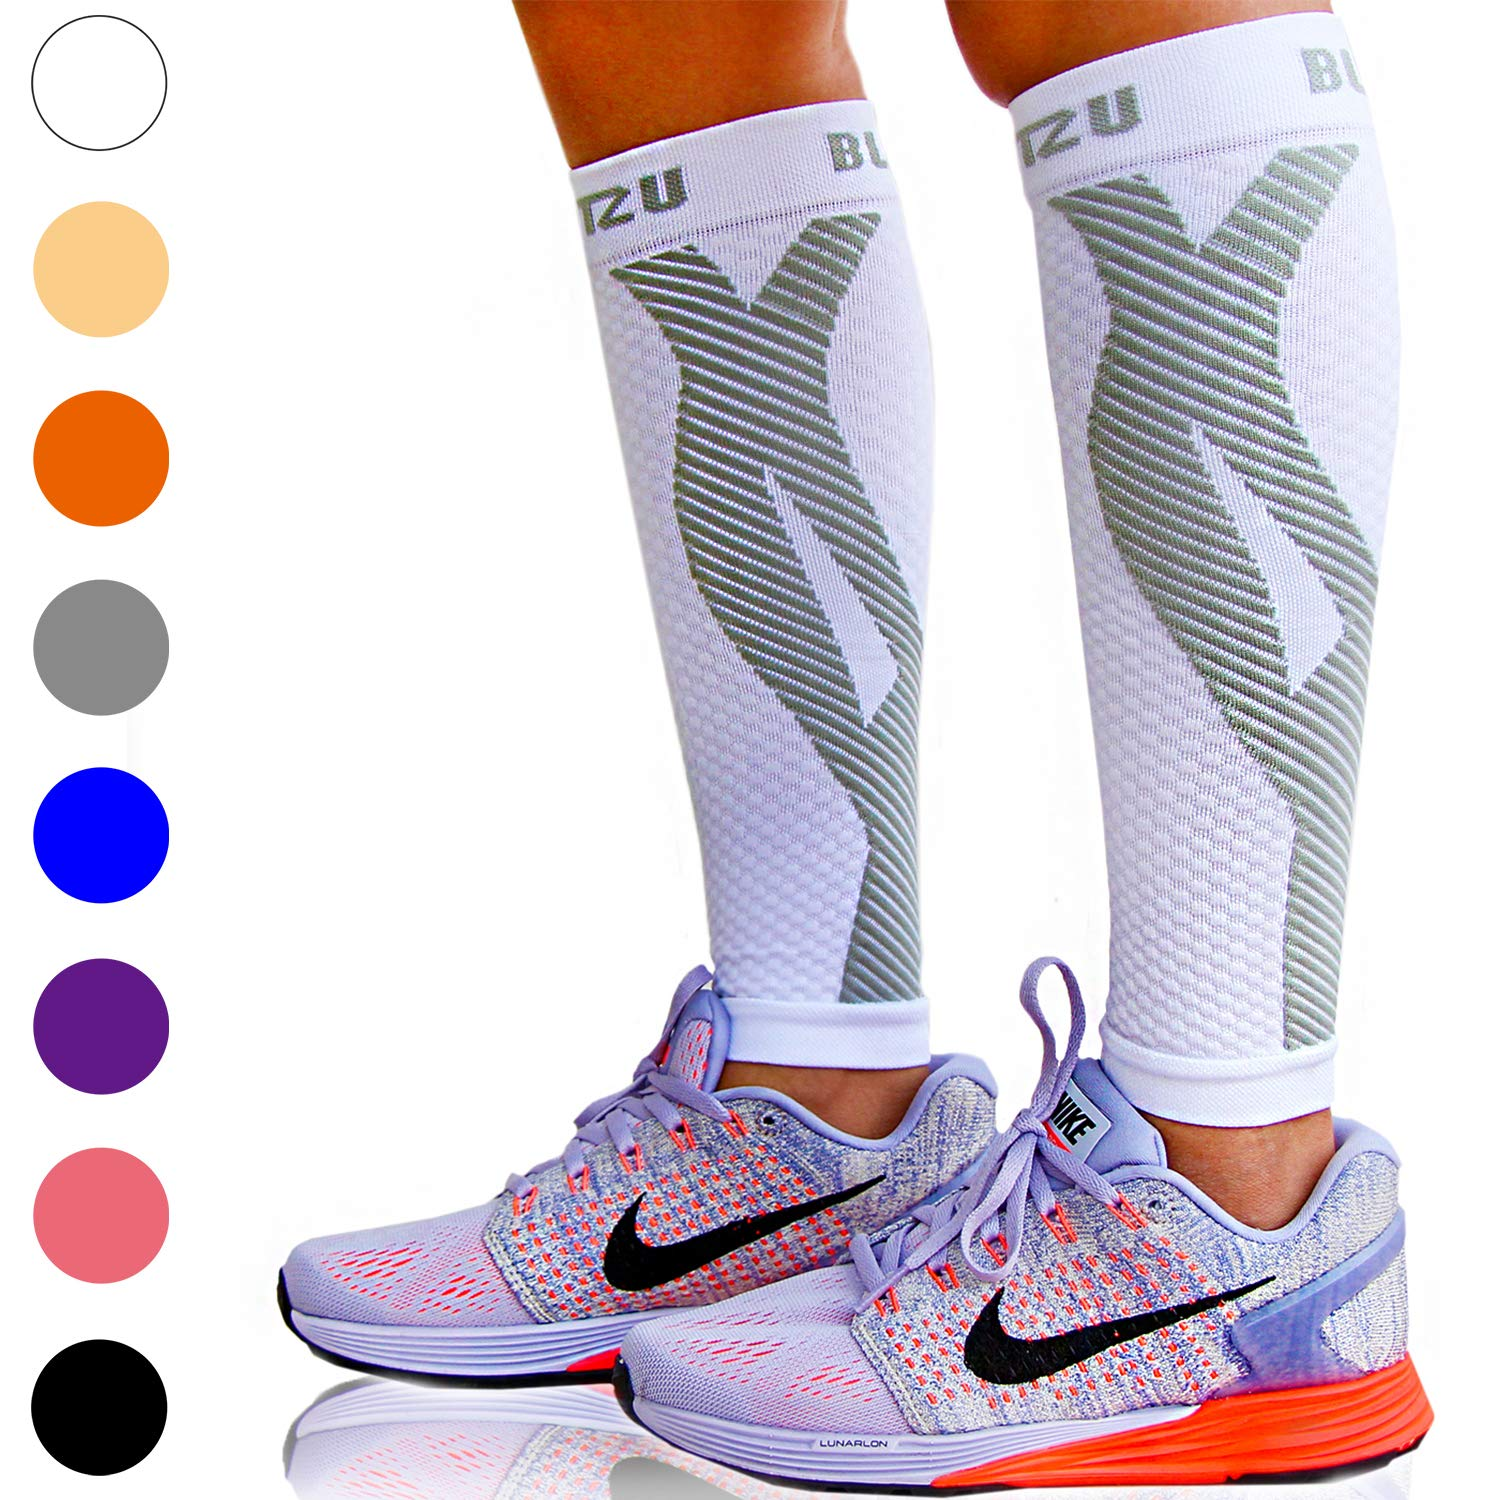 BLITZU Calf Compression Sleeve One Pair Leg Performance Support for Shin Splint & Calf Pain Relief. Men Women Runners Guards Sleeves for Running. Improves Circulation and Recovery White L/XL by BLITZU